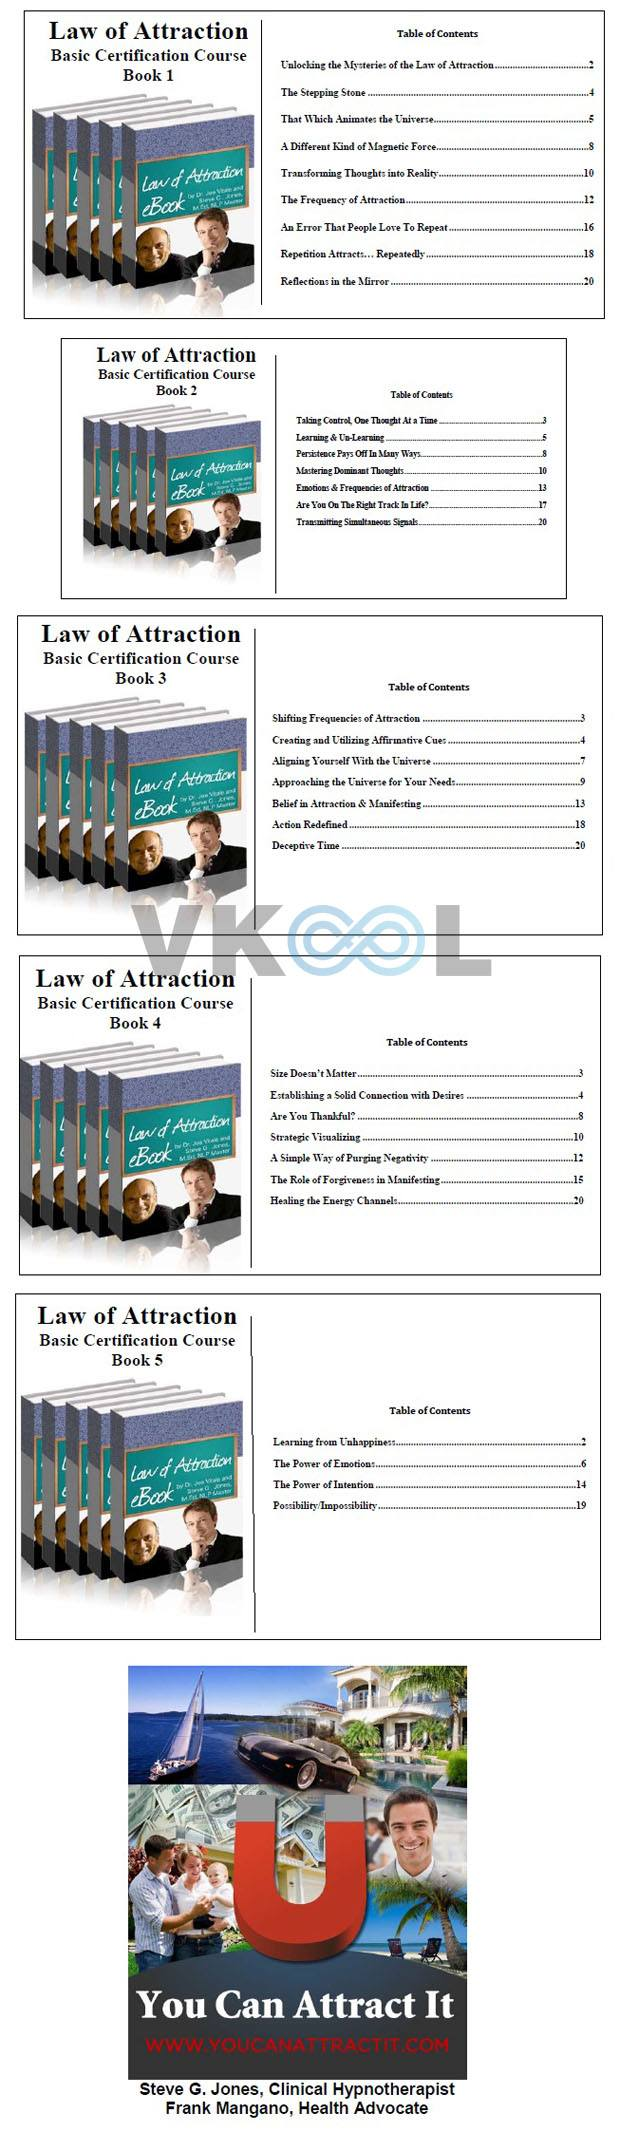 law of attraction review book